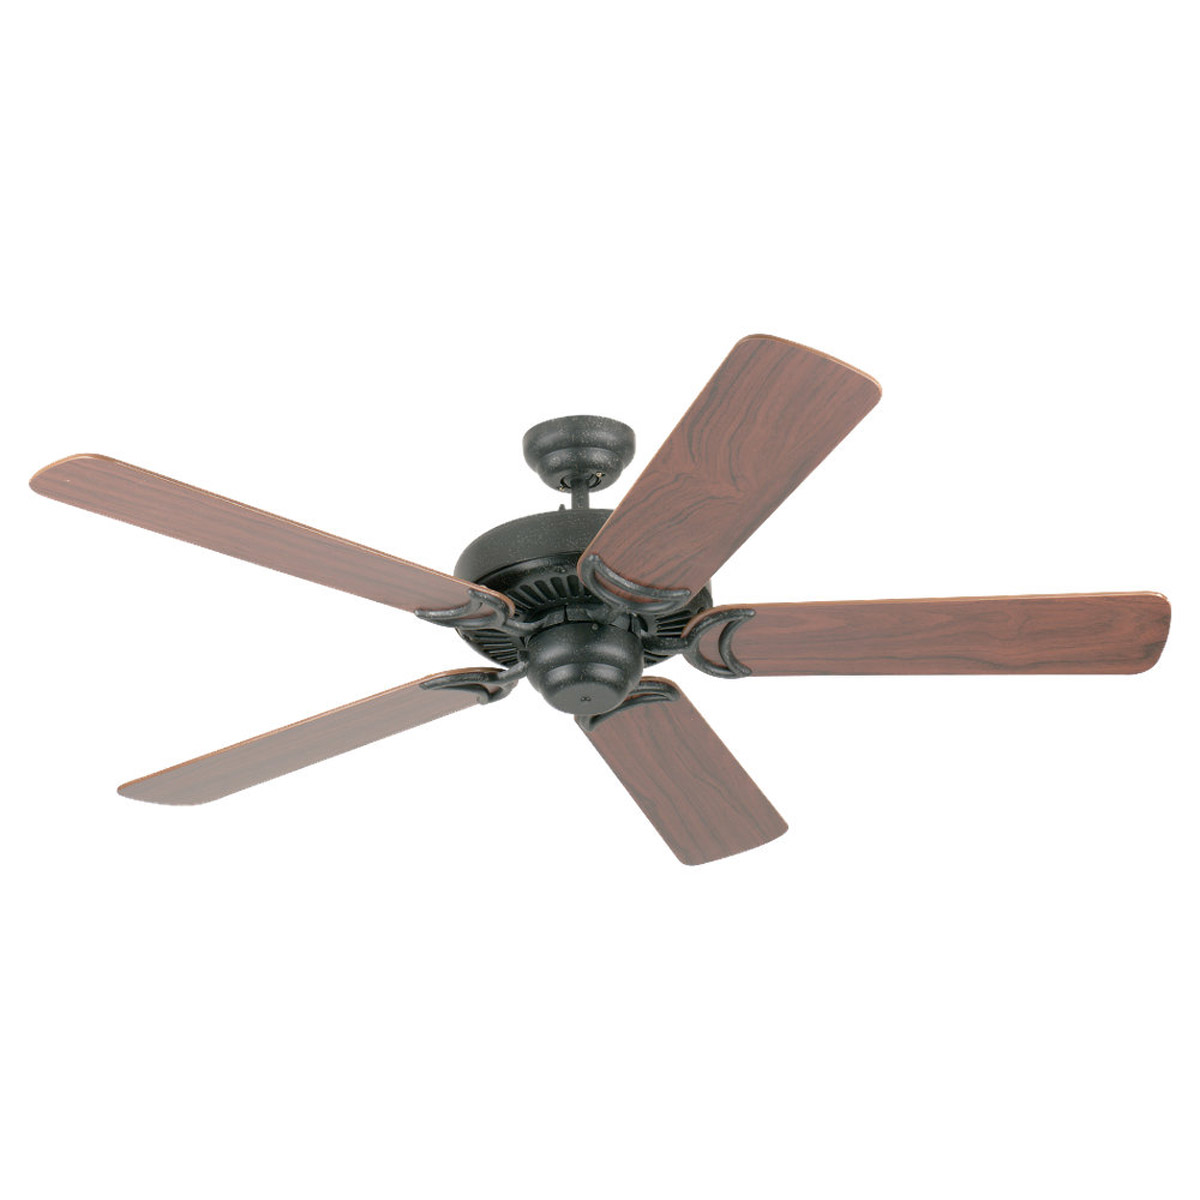 Sea Gull Lighting 52in Celebrity Deluxe Ceiling Fan in Weathered Iron 1535-07